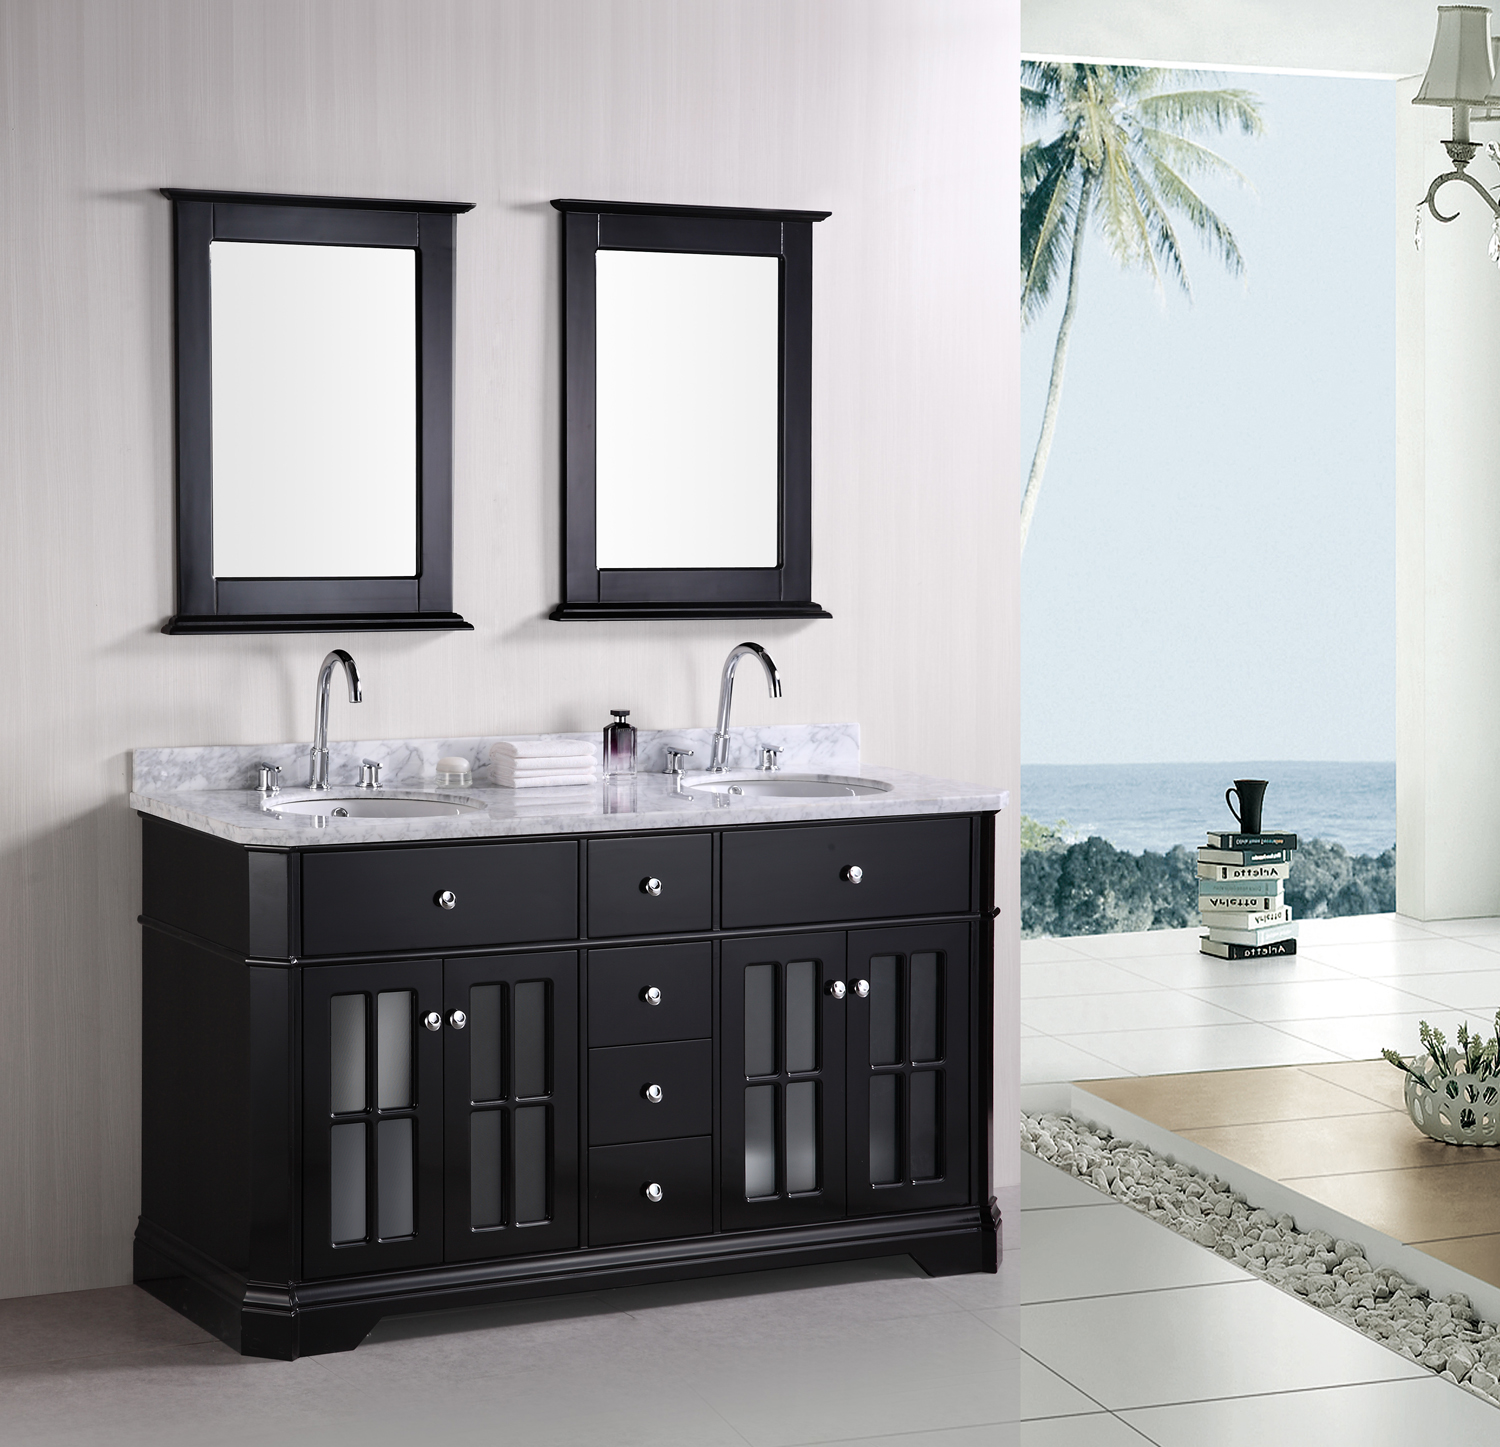 how to design a luxury bathroom with black cabinets 1 how to design bathroom luxury accessories furniture cabinet